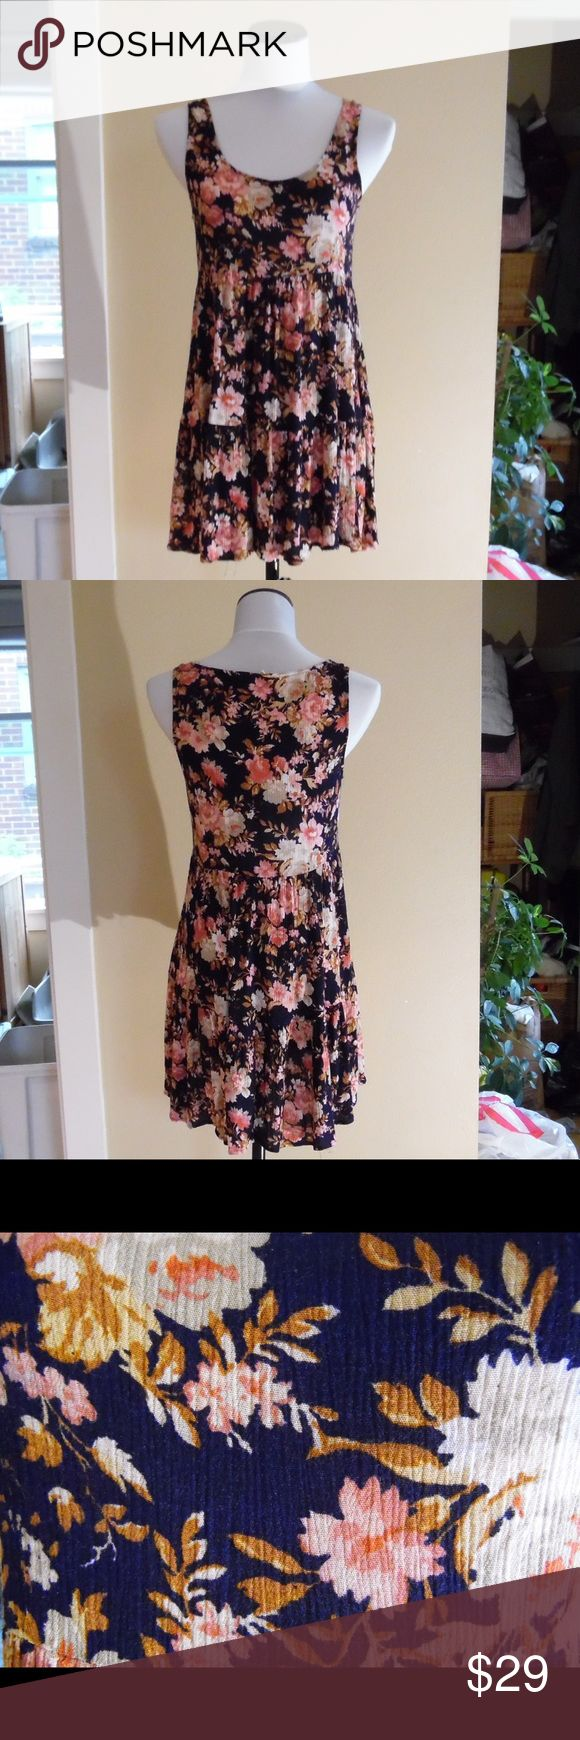 American eagle outfitters floral babydoll dress. Pretty baby doll dress from American Eagle outfitters. Worn a few times. Looks and feels new. Pretty pattern and nice colors. Really nice texture. American Eagle Outfitters Dresses Midi